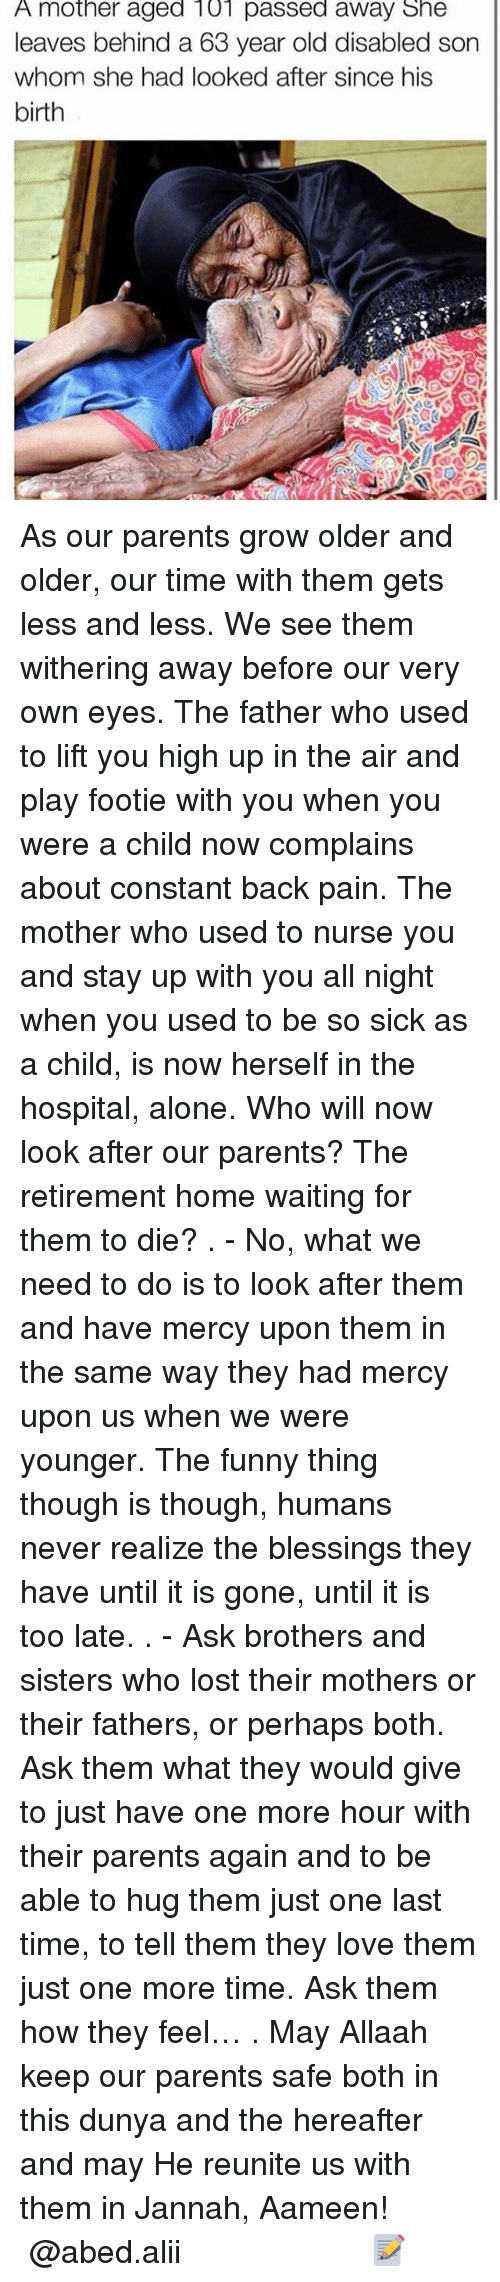 Memes, 🤖, and Ask: A mother aged 101 passed away She  leaves behind a 63 year old disabled son  whom she had looked after since his  birth As our parents grow older and older, our time with them gets less and less. We see them withering away before our very own eyes. The father who used to lift you high up in the air and play footie with you when you were a child now complains about constant back pain. The mother who used to nurse you and stay up with you all night when you used to be so sick as a child, is now herself in the hospital, alone. Who will now look after our parents? The retirement home waiting for them to die? . - No, what we need to do is to look after them and have mercy upon them in the same way they had mercy upon us when we were younger. The funny thing though is though, humans never realize the blessings they have until it is gone, until it is too late. . - Ask brothers and sisters who lost their mothers or their fathers, or perhaps both. Ask them what they would give to just have one more hour with their parents again and to be able to hug them just one last time, to tell them they love them just one more time. Ask them how they feel… . May Allaah keep our parents safe both in this dunya and the hereafter and may He reunite us with them in Jannah, Aameen! ▃▃▃▃▃▃▃▃▃▃▃▃▃▃▃▃▃▃▃▃ @abed.alii 📝